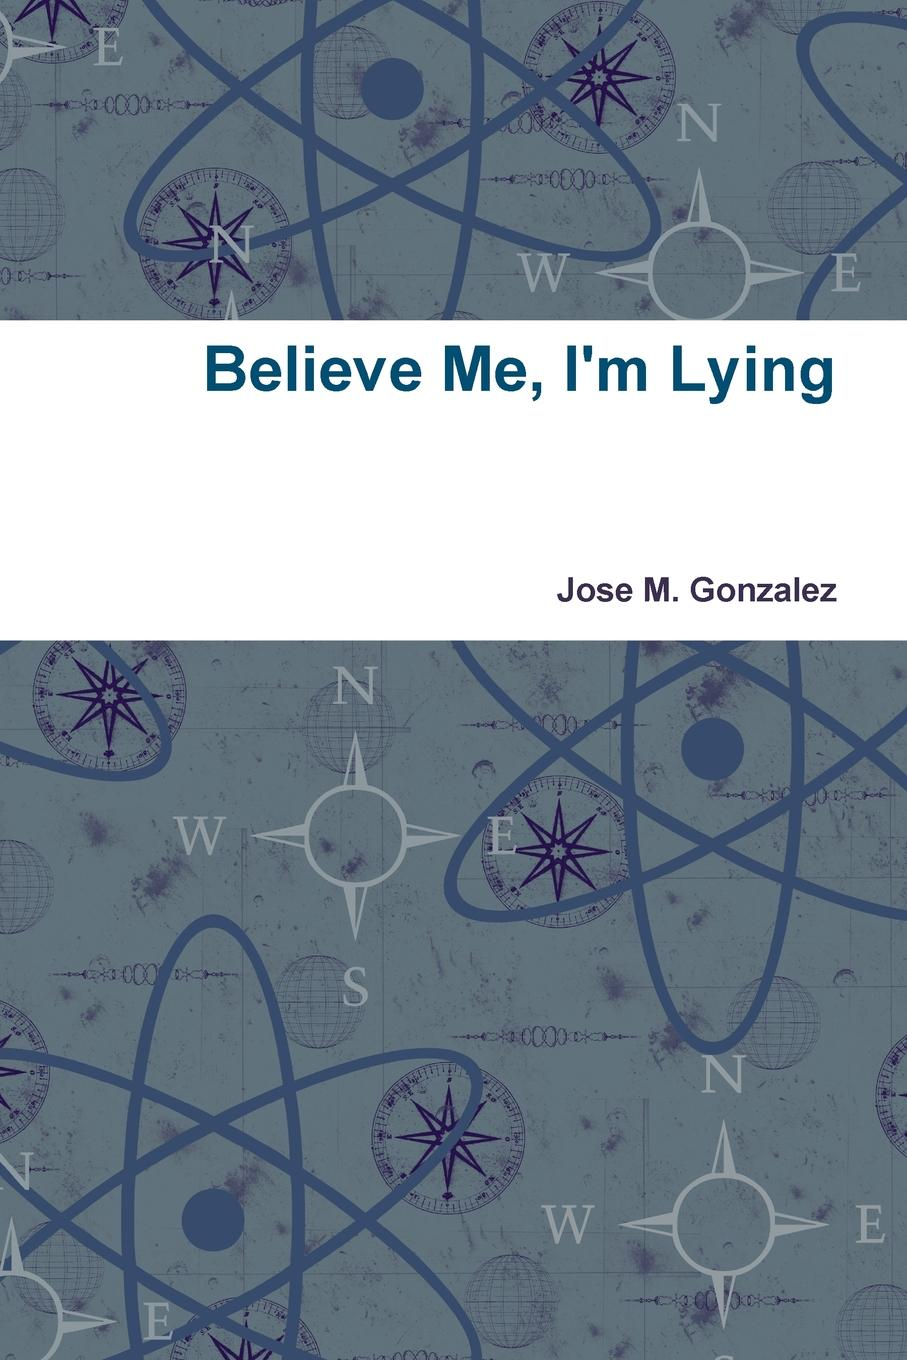 Jose M. Gonzalez Believe Me, I.m Lying about me fish